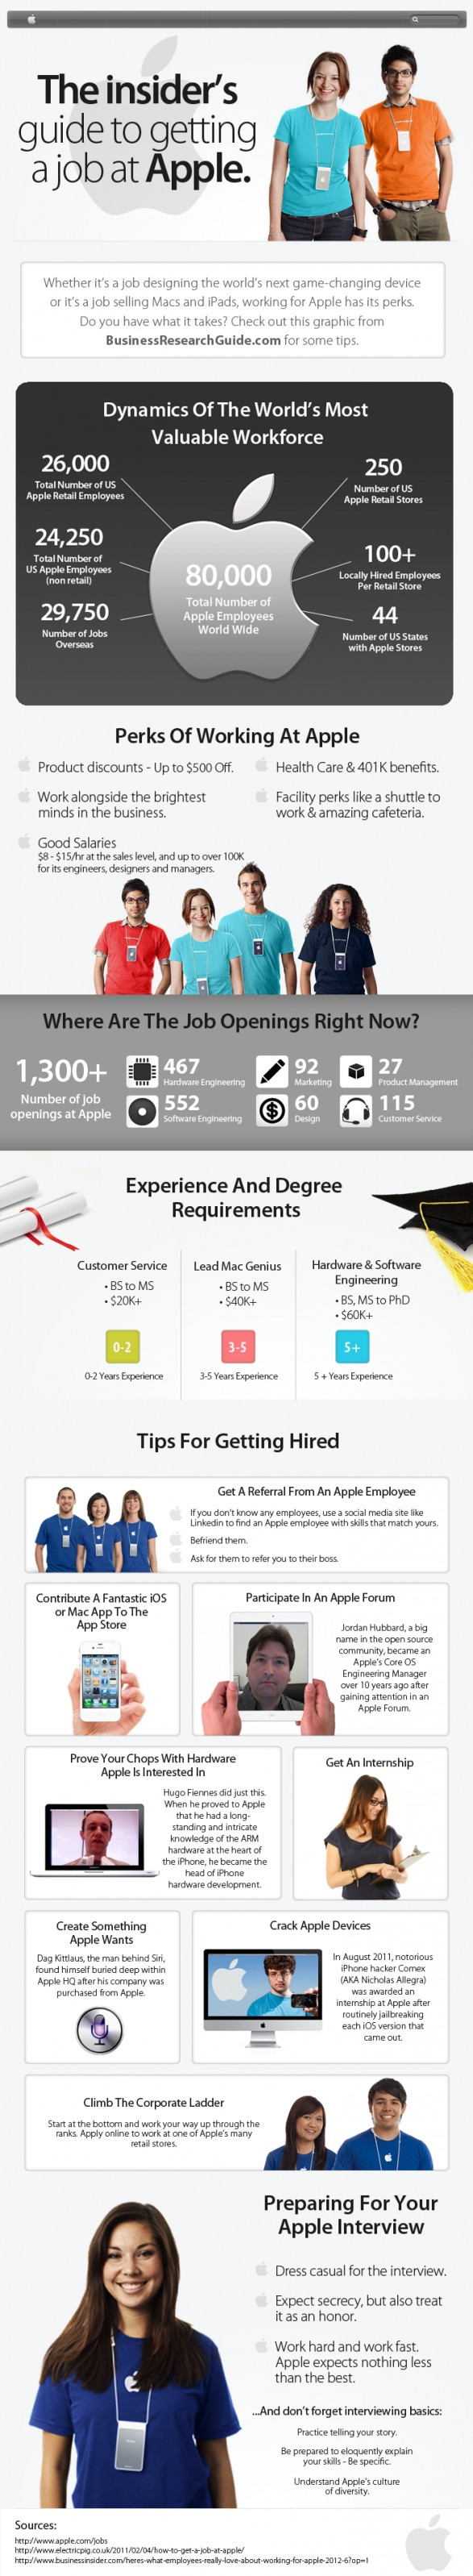 the insider s guide to getting a job at apple infographic courtesy of business research guide via visual ly